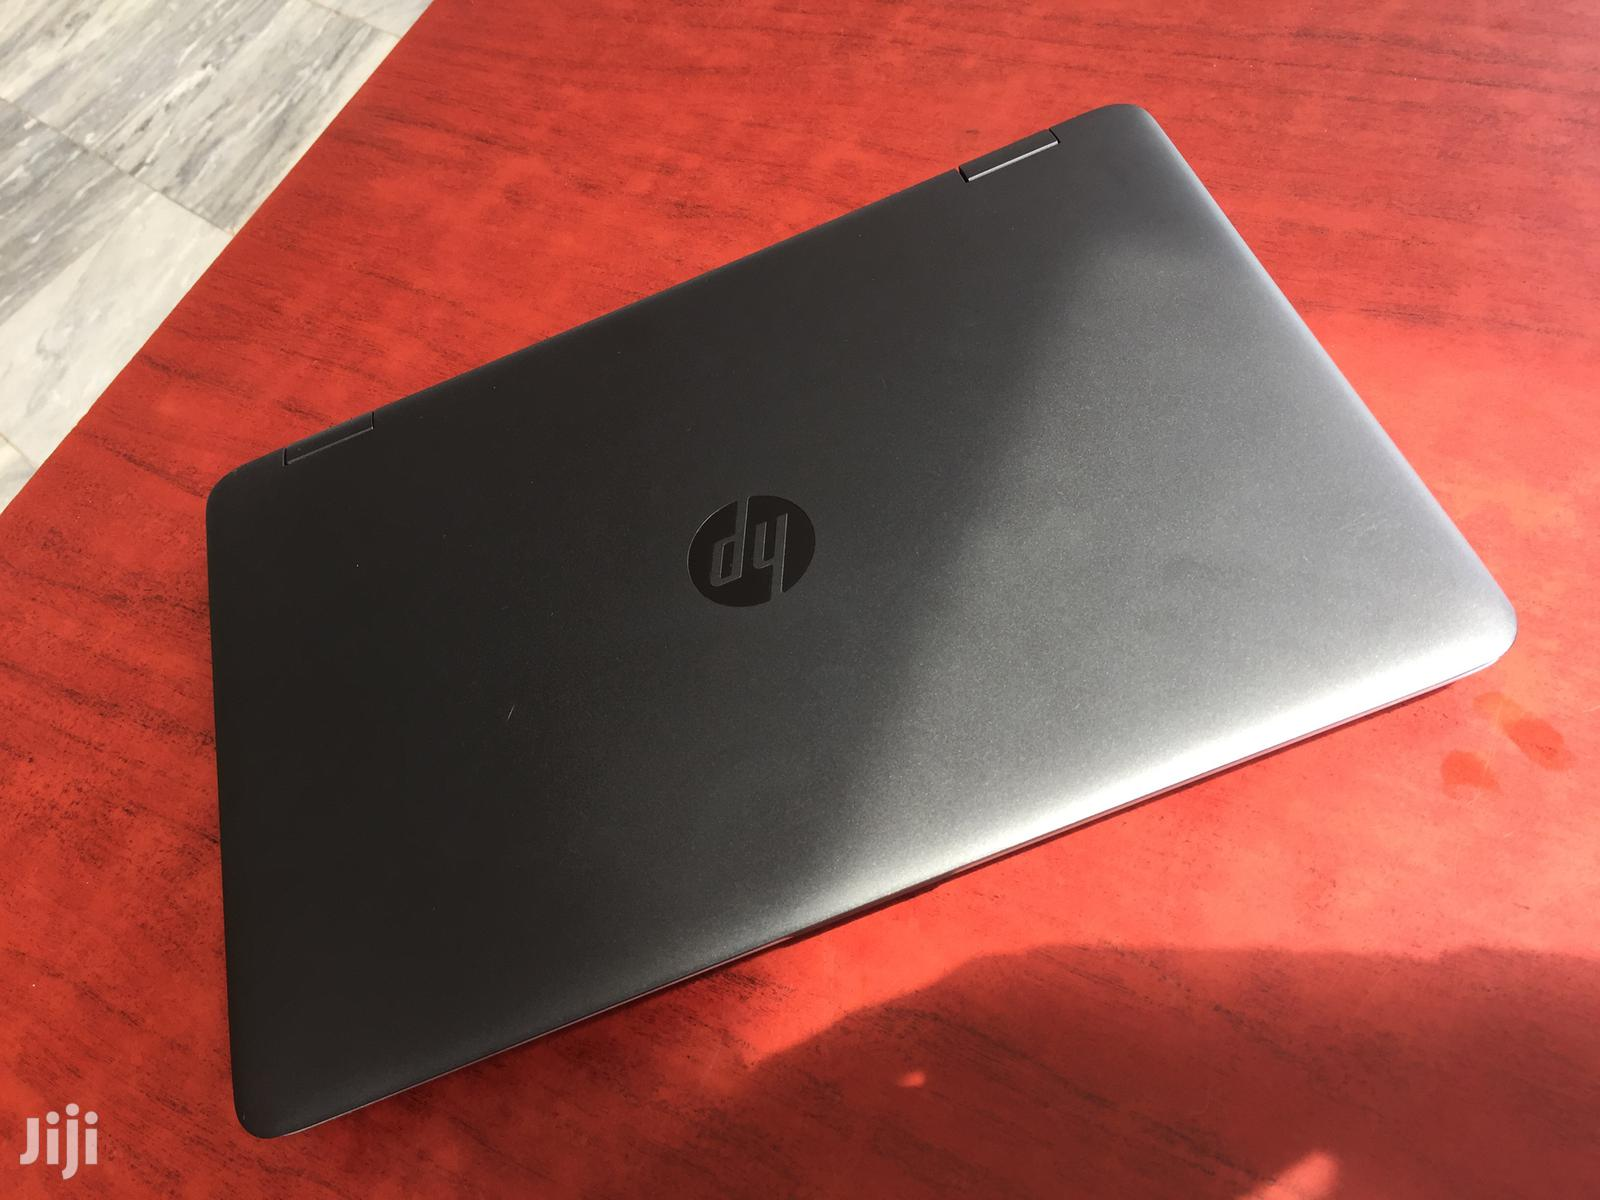 New Laptop HP ProBook 650 G2 8GB Intel Core I5 HDD 500GB | Laptops & Computers for sale in Kampala, Central Region, Uganda